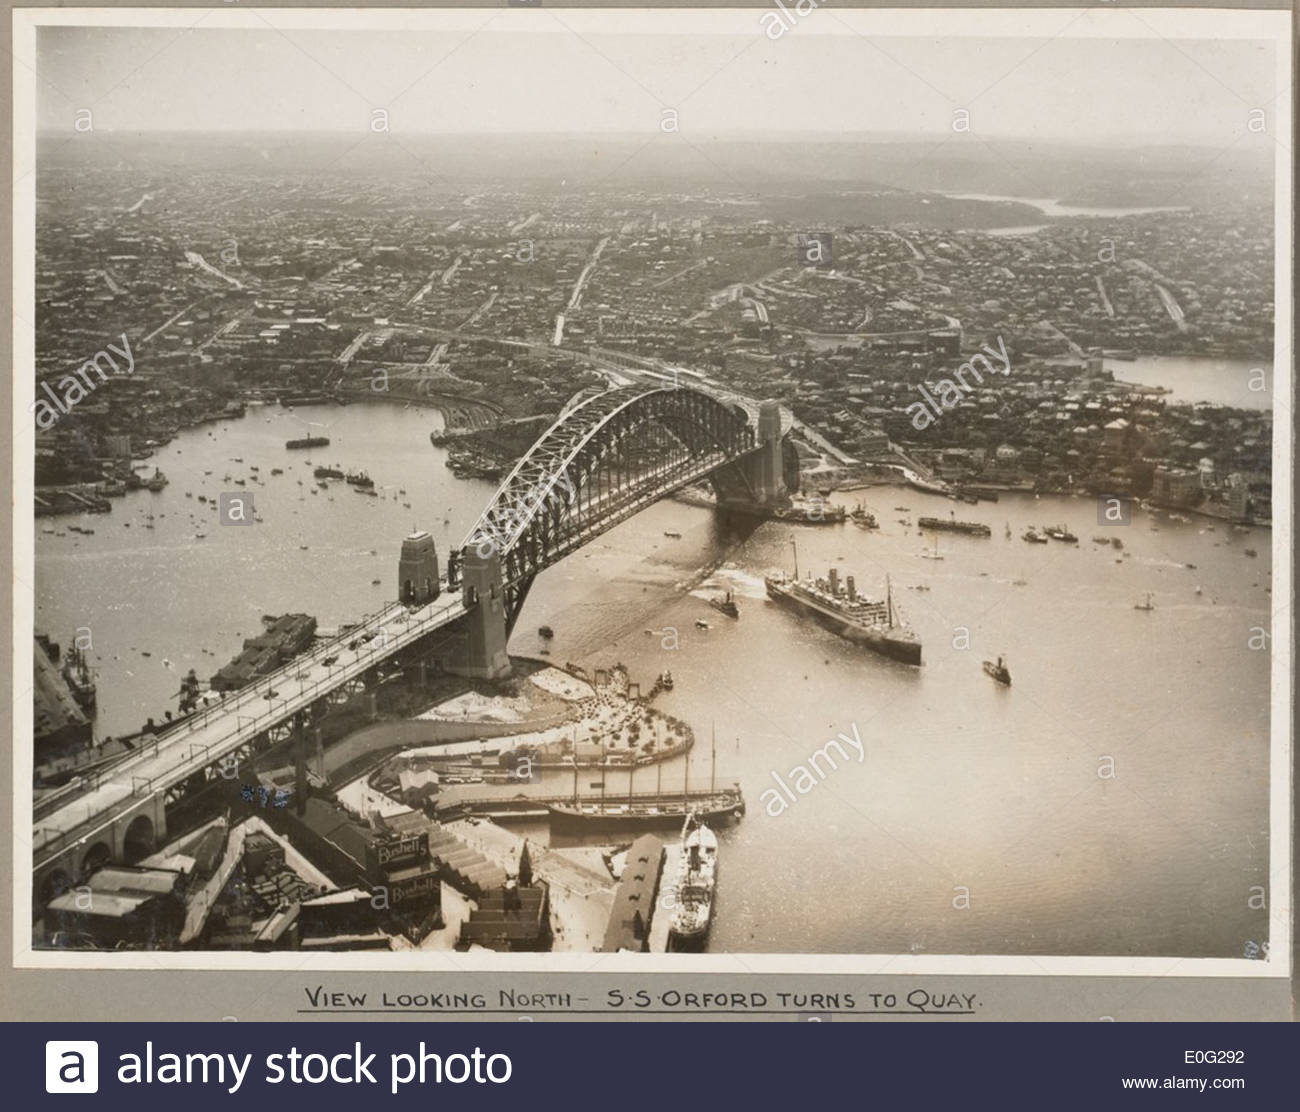 Orient liner SS Orford passing under Sydney Harbour Bridge turning towards Circular Quay, 19 March 1932 - Stock Image